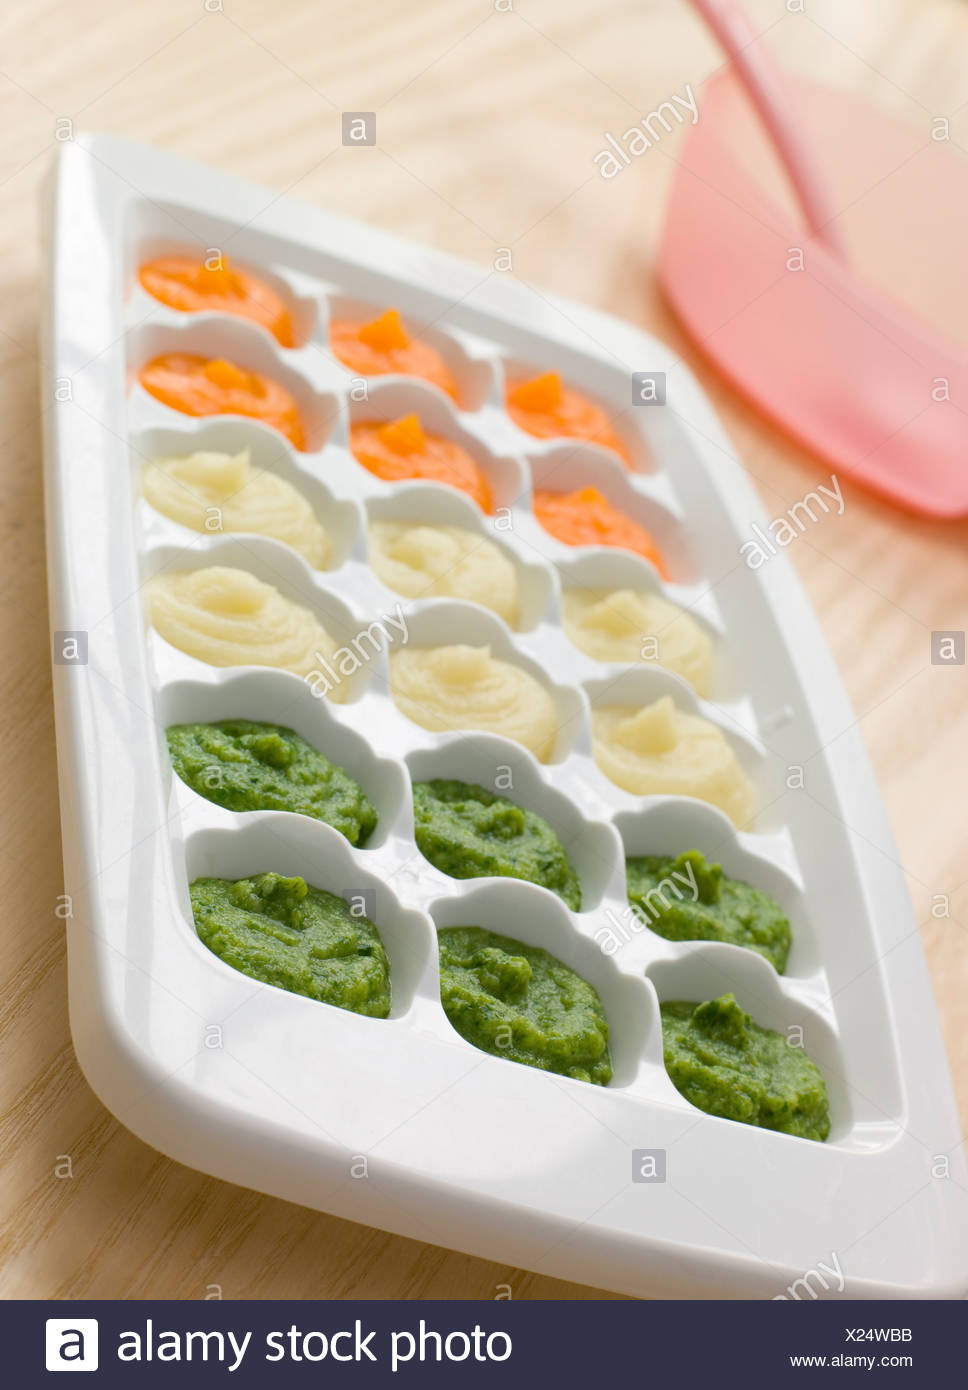 Pureed Baby Food in a Ice Cube Tray - Stock Image